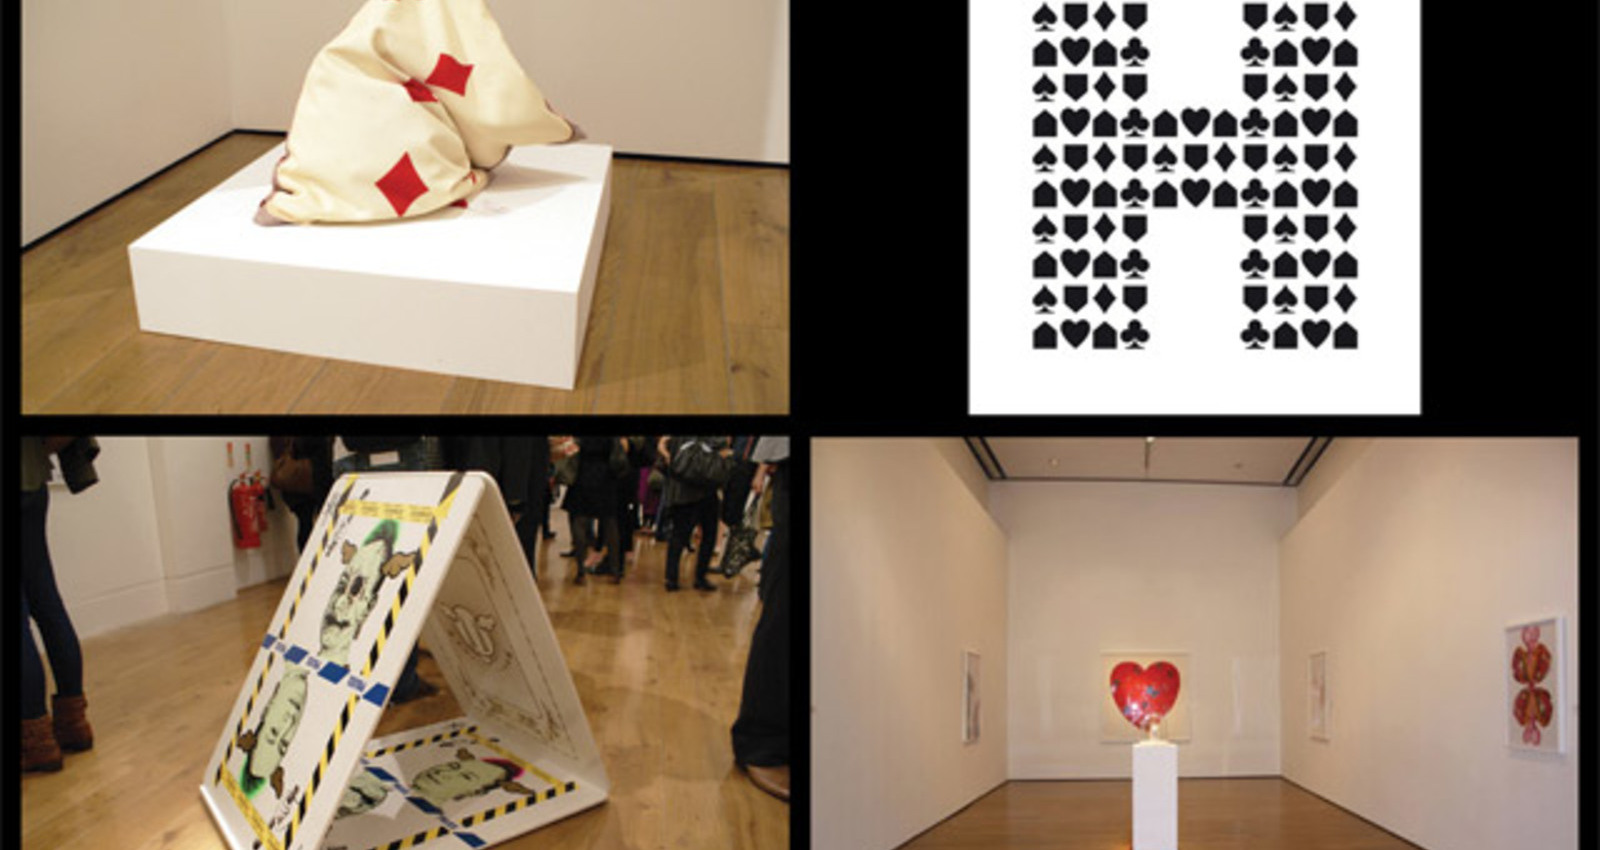 House of Cards Exhibition